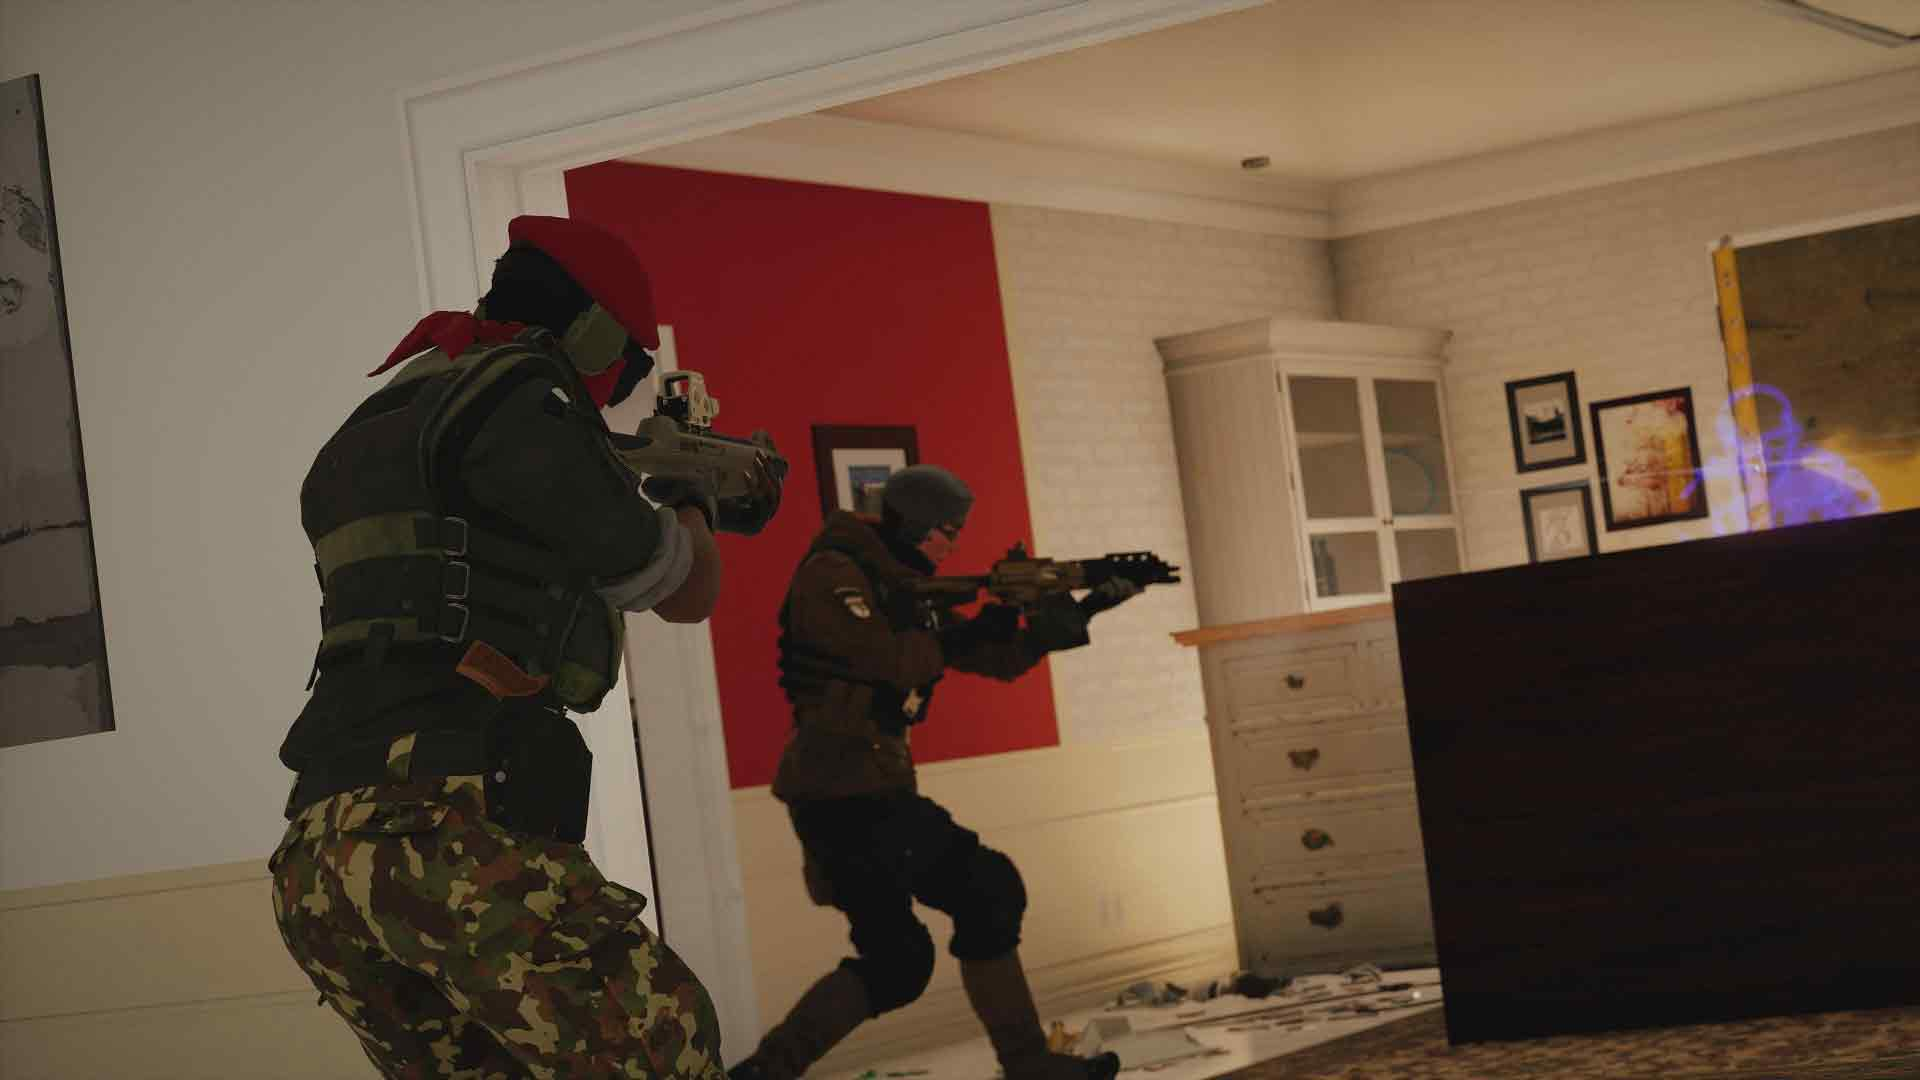 Rainbow Six Siege for PC